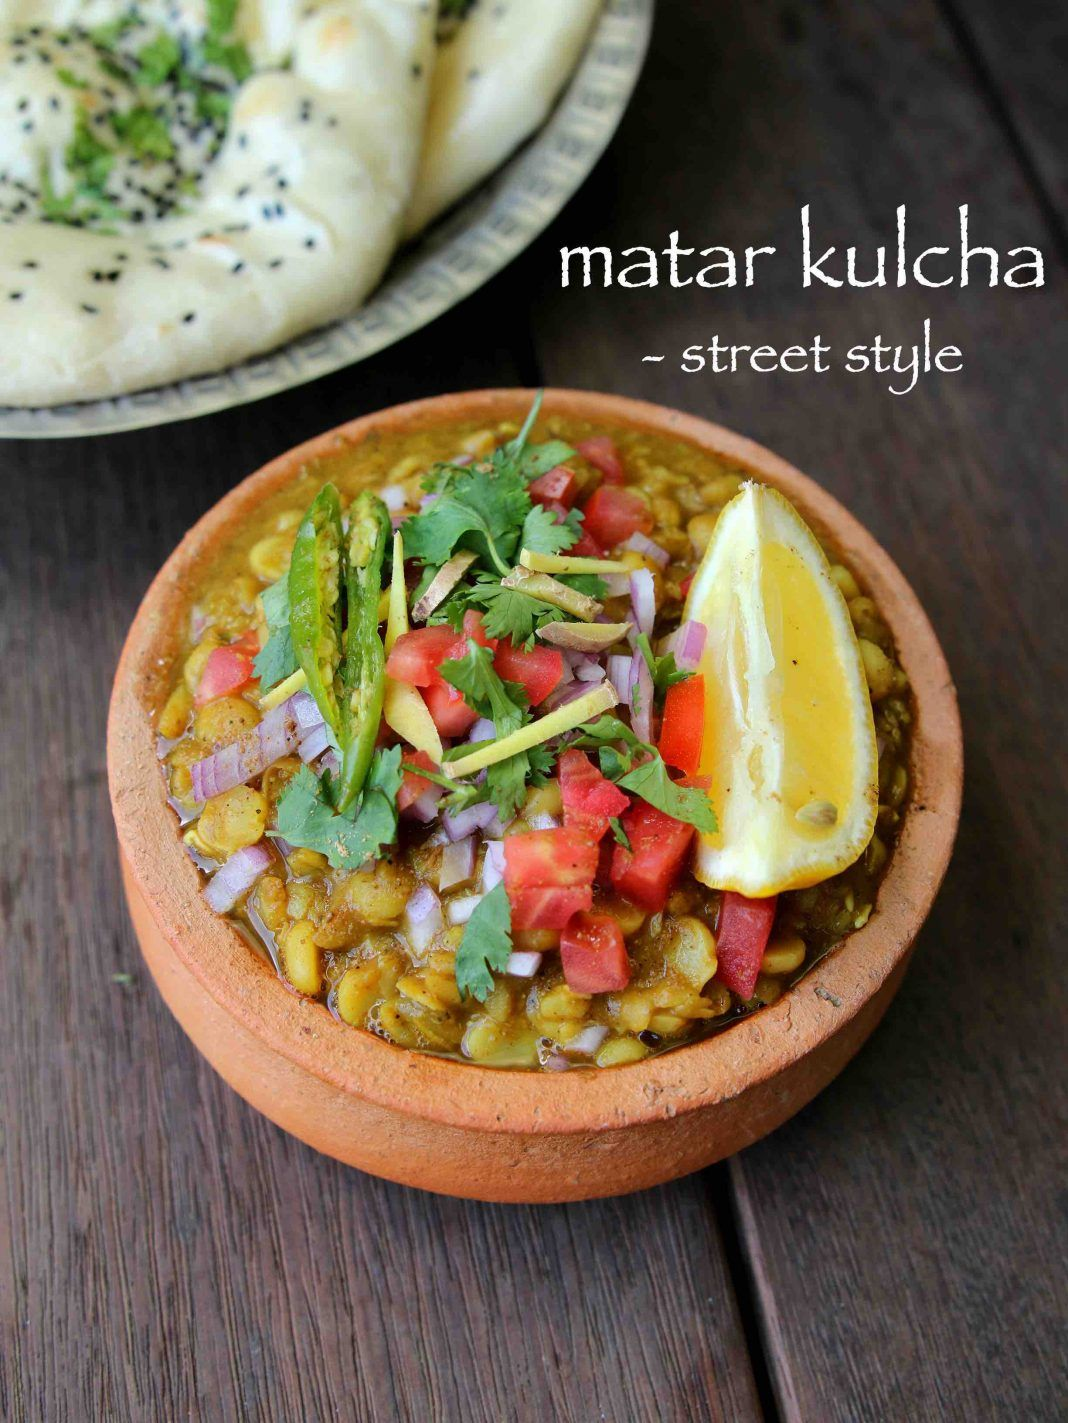 Matar kulcha recipe projects to try pinterest street food food matar kulcha recipe forumfinder Images